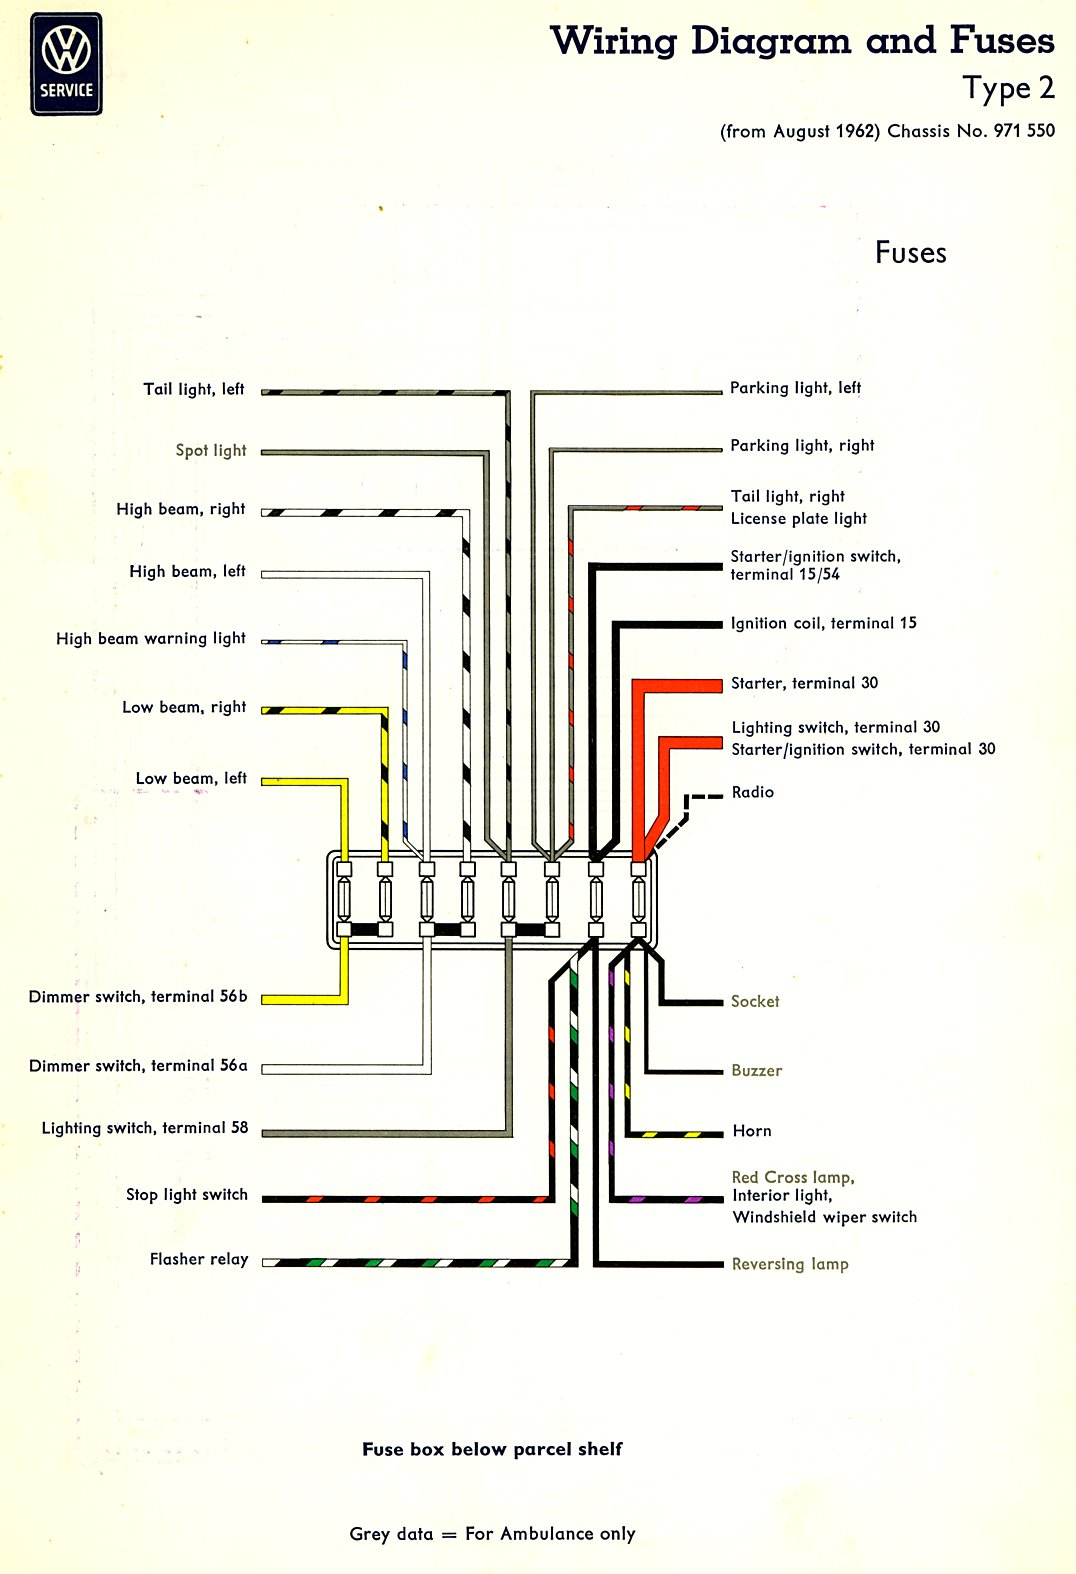 Gm Fuse Box Split Simple Wiring Schema Connectors In 2001 Eurovan Alternator Diagram Cable